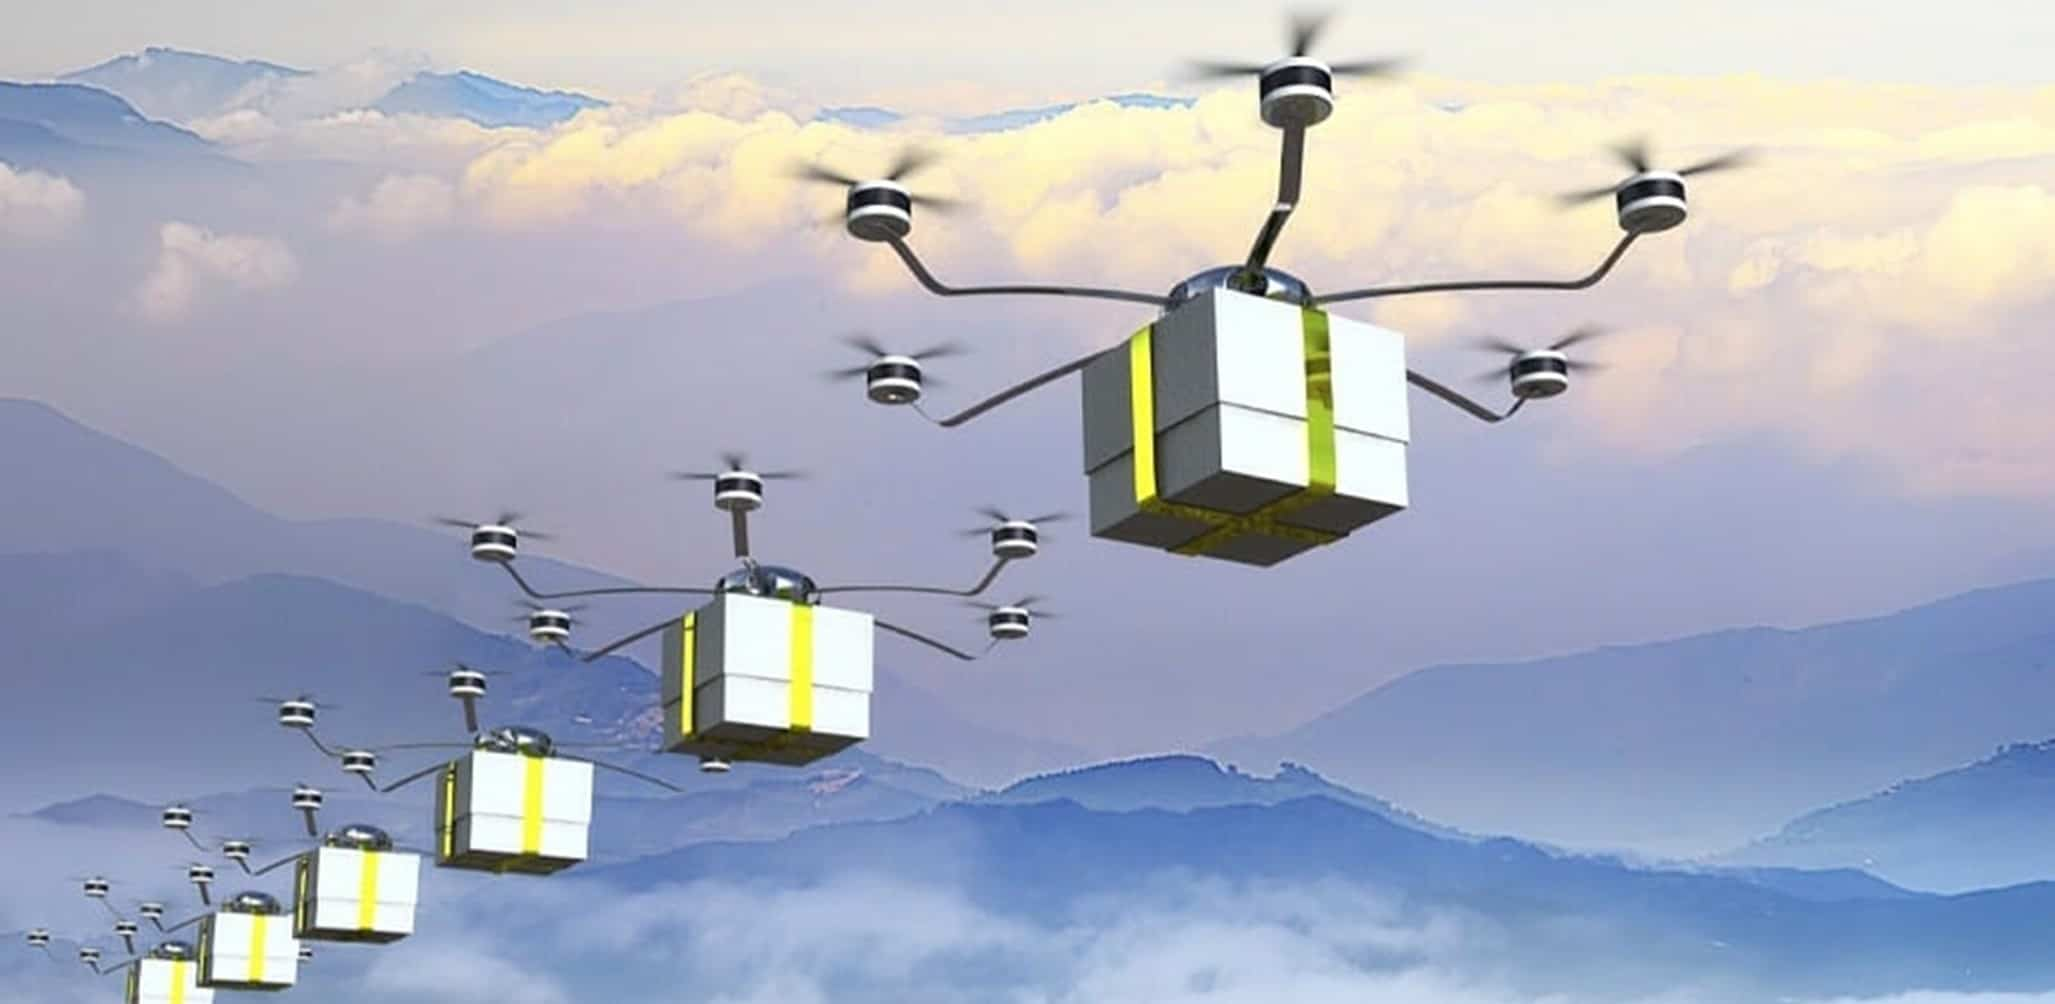 There's A Lot of 'Buzz' on the Promise of Drone Delivery, But What's Next?